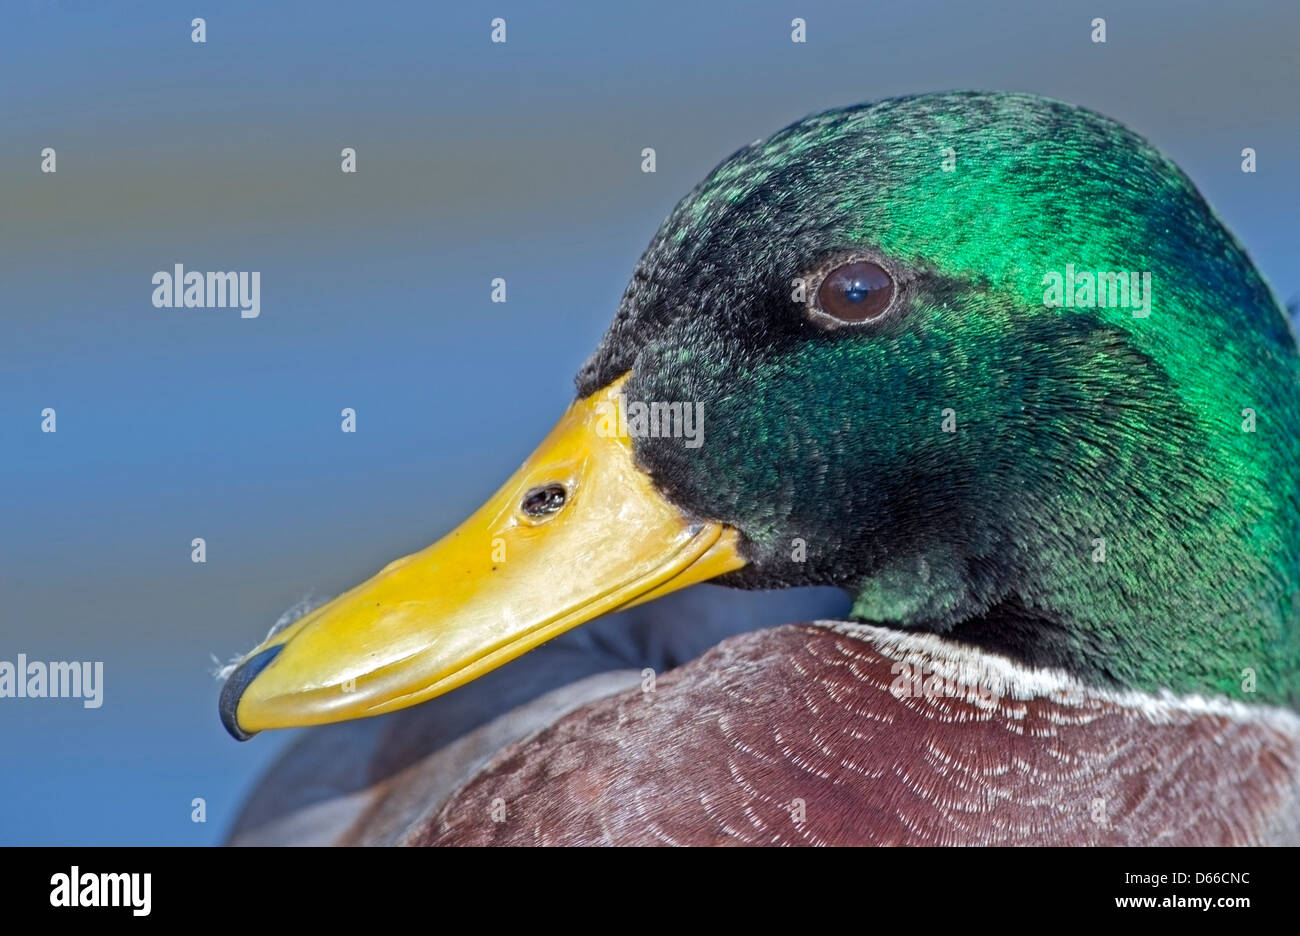 Anas platyrhynchos, Mallard  close up portrait shot - Stock Image